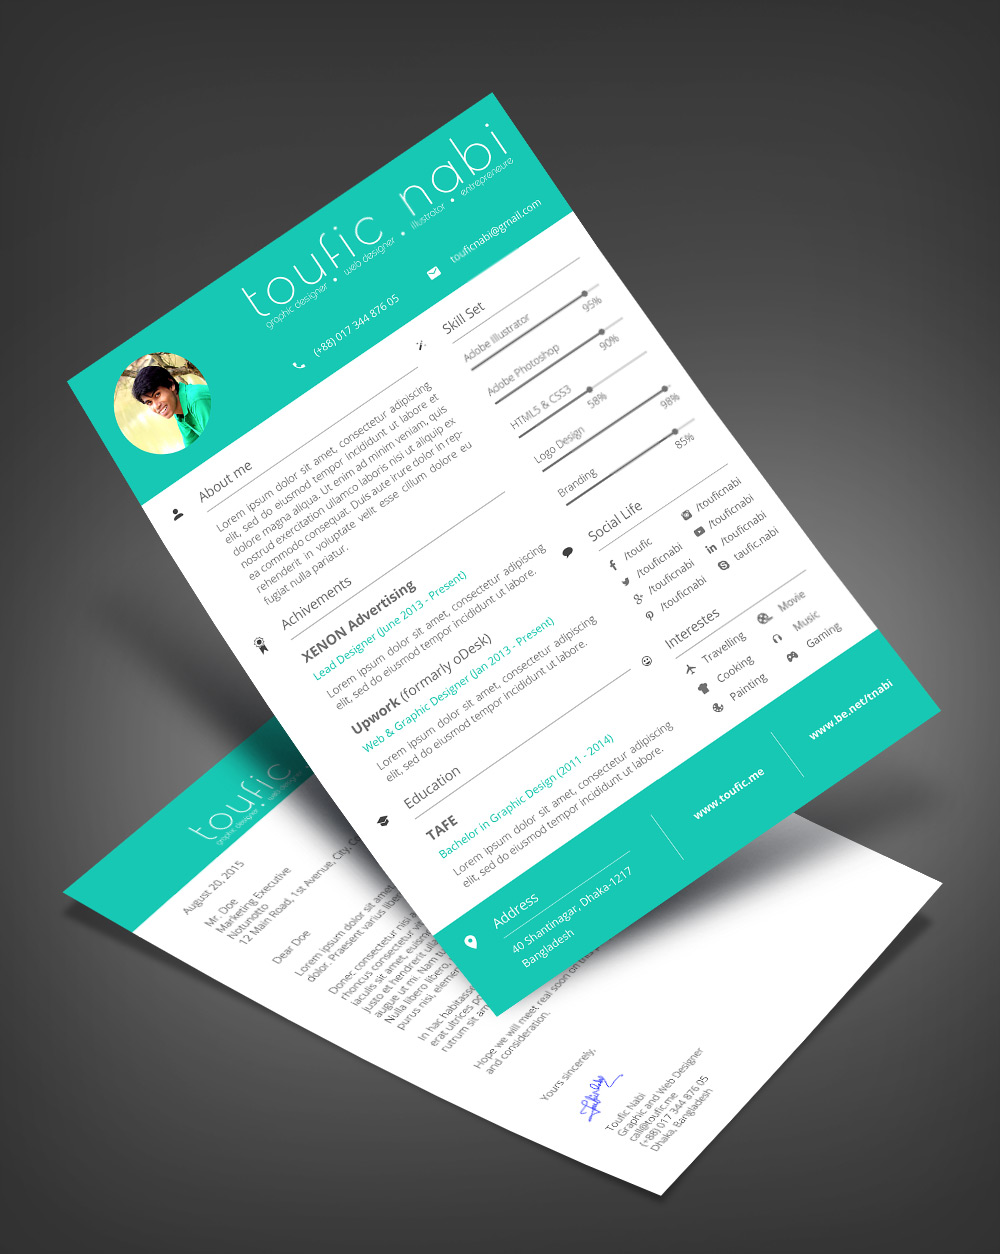 Free Resume Design Template & Cover Letter For Designers PSD File (3)